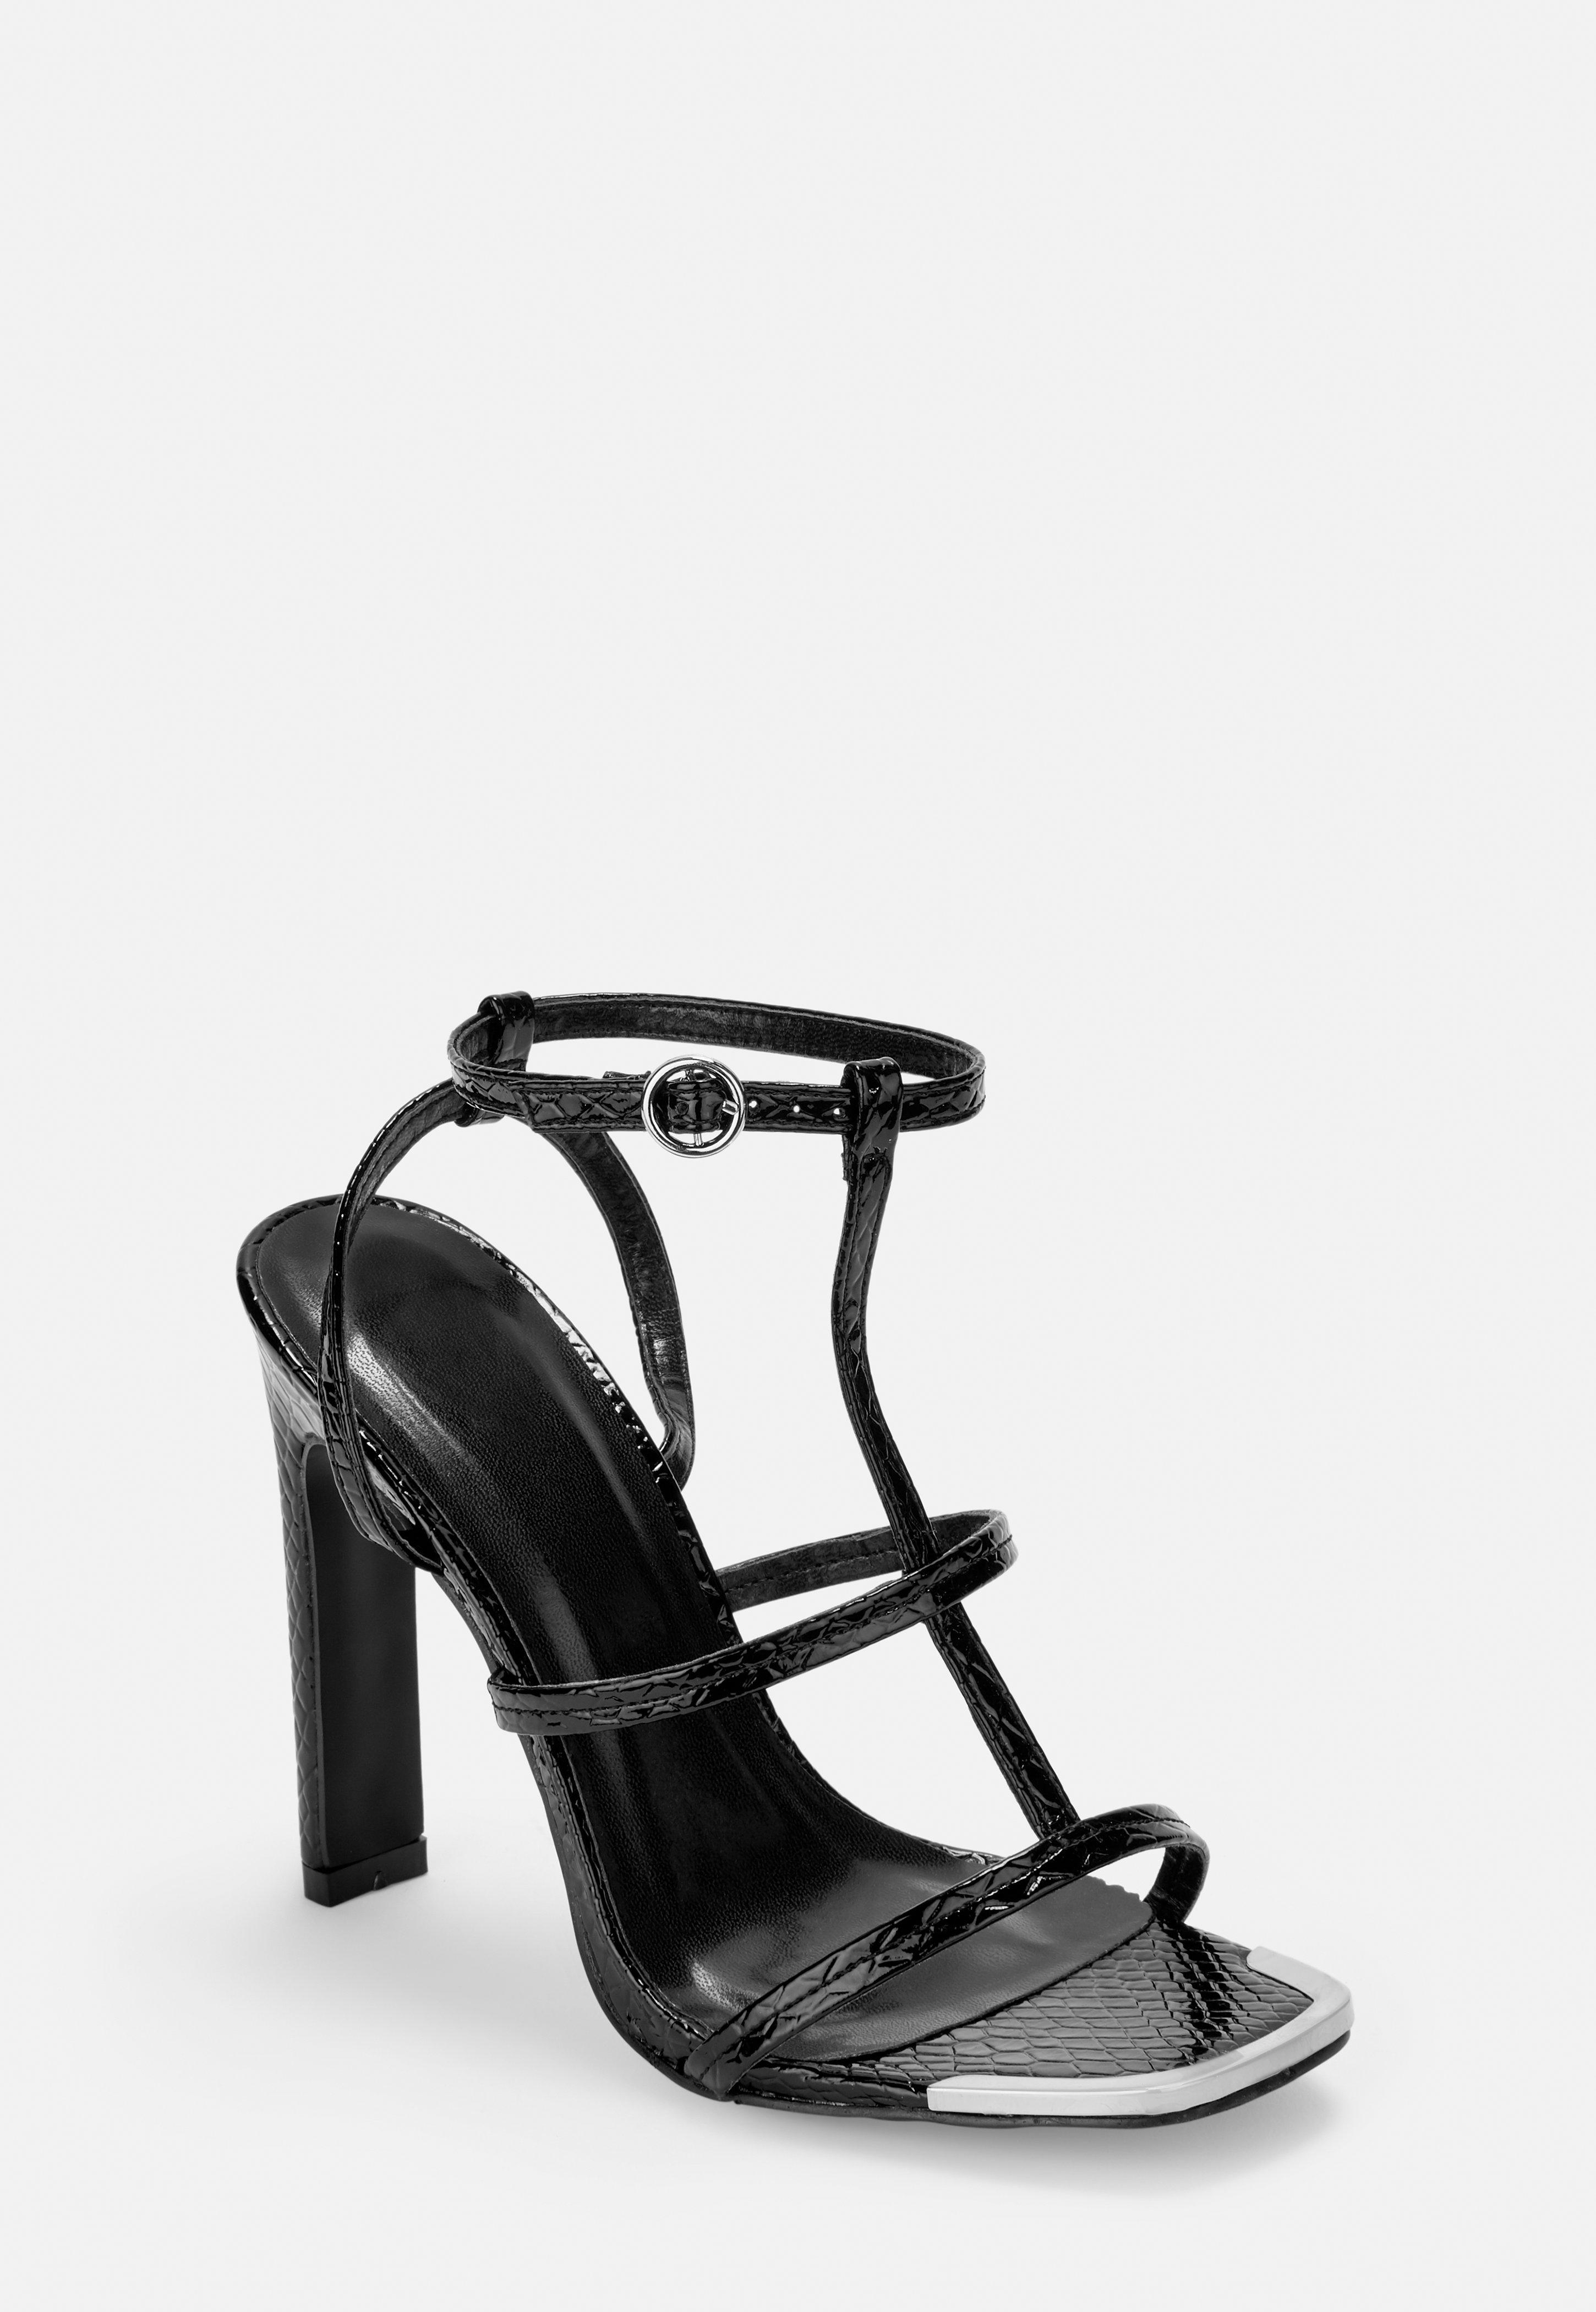 17c4cc9af8 Heeled Sandals | Strappy & Barely There Heels - Missguided